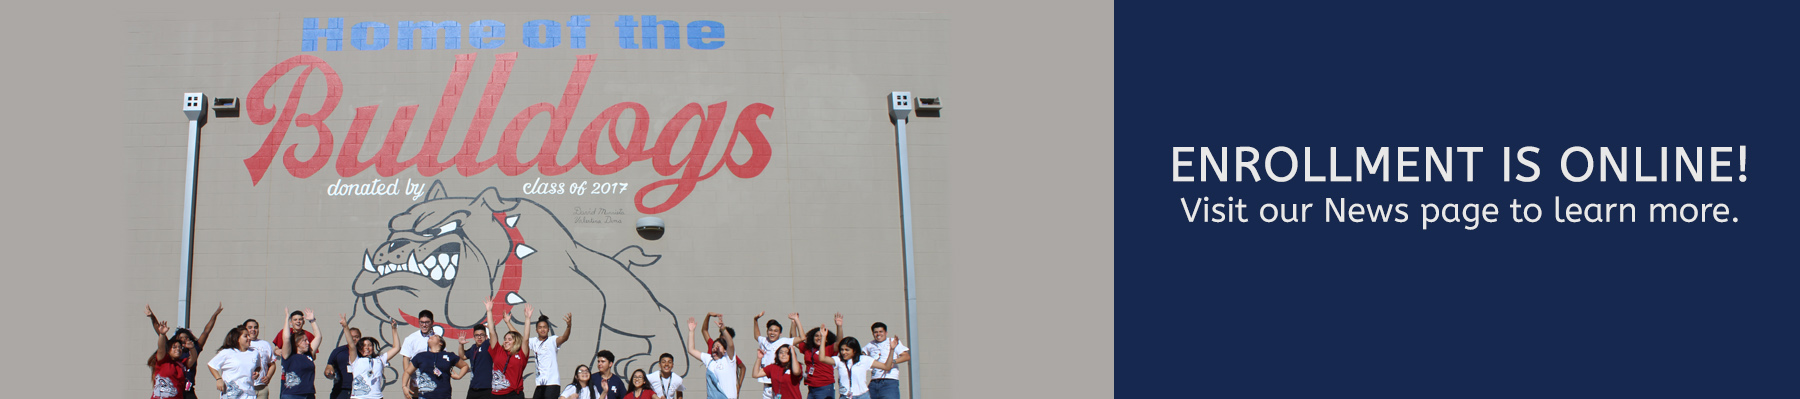 Students in front of Bulldog wall - ENROLLMENT IS ONLINE - Visit our News page to learn more.